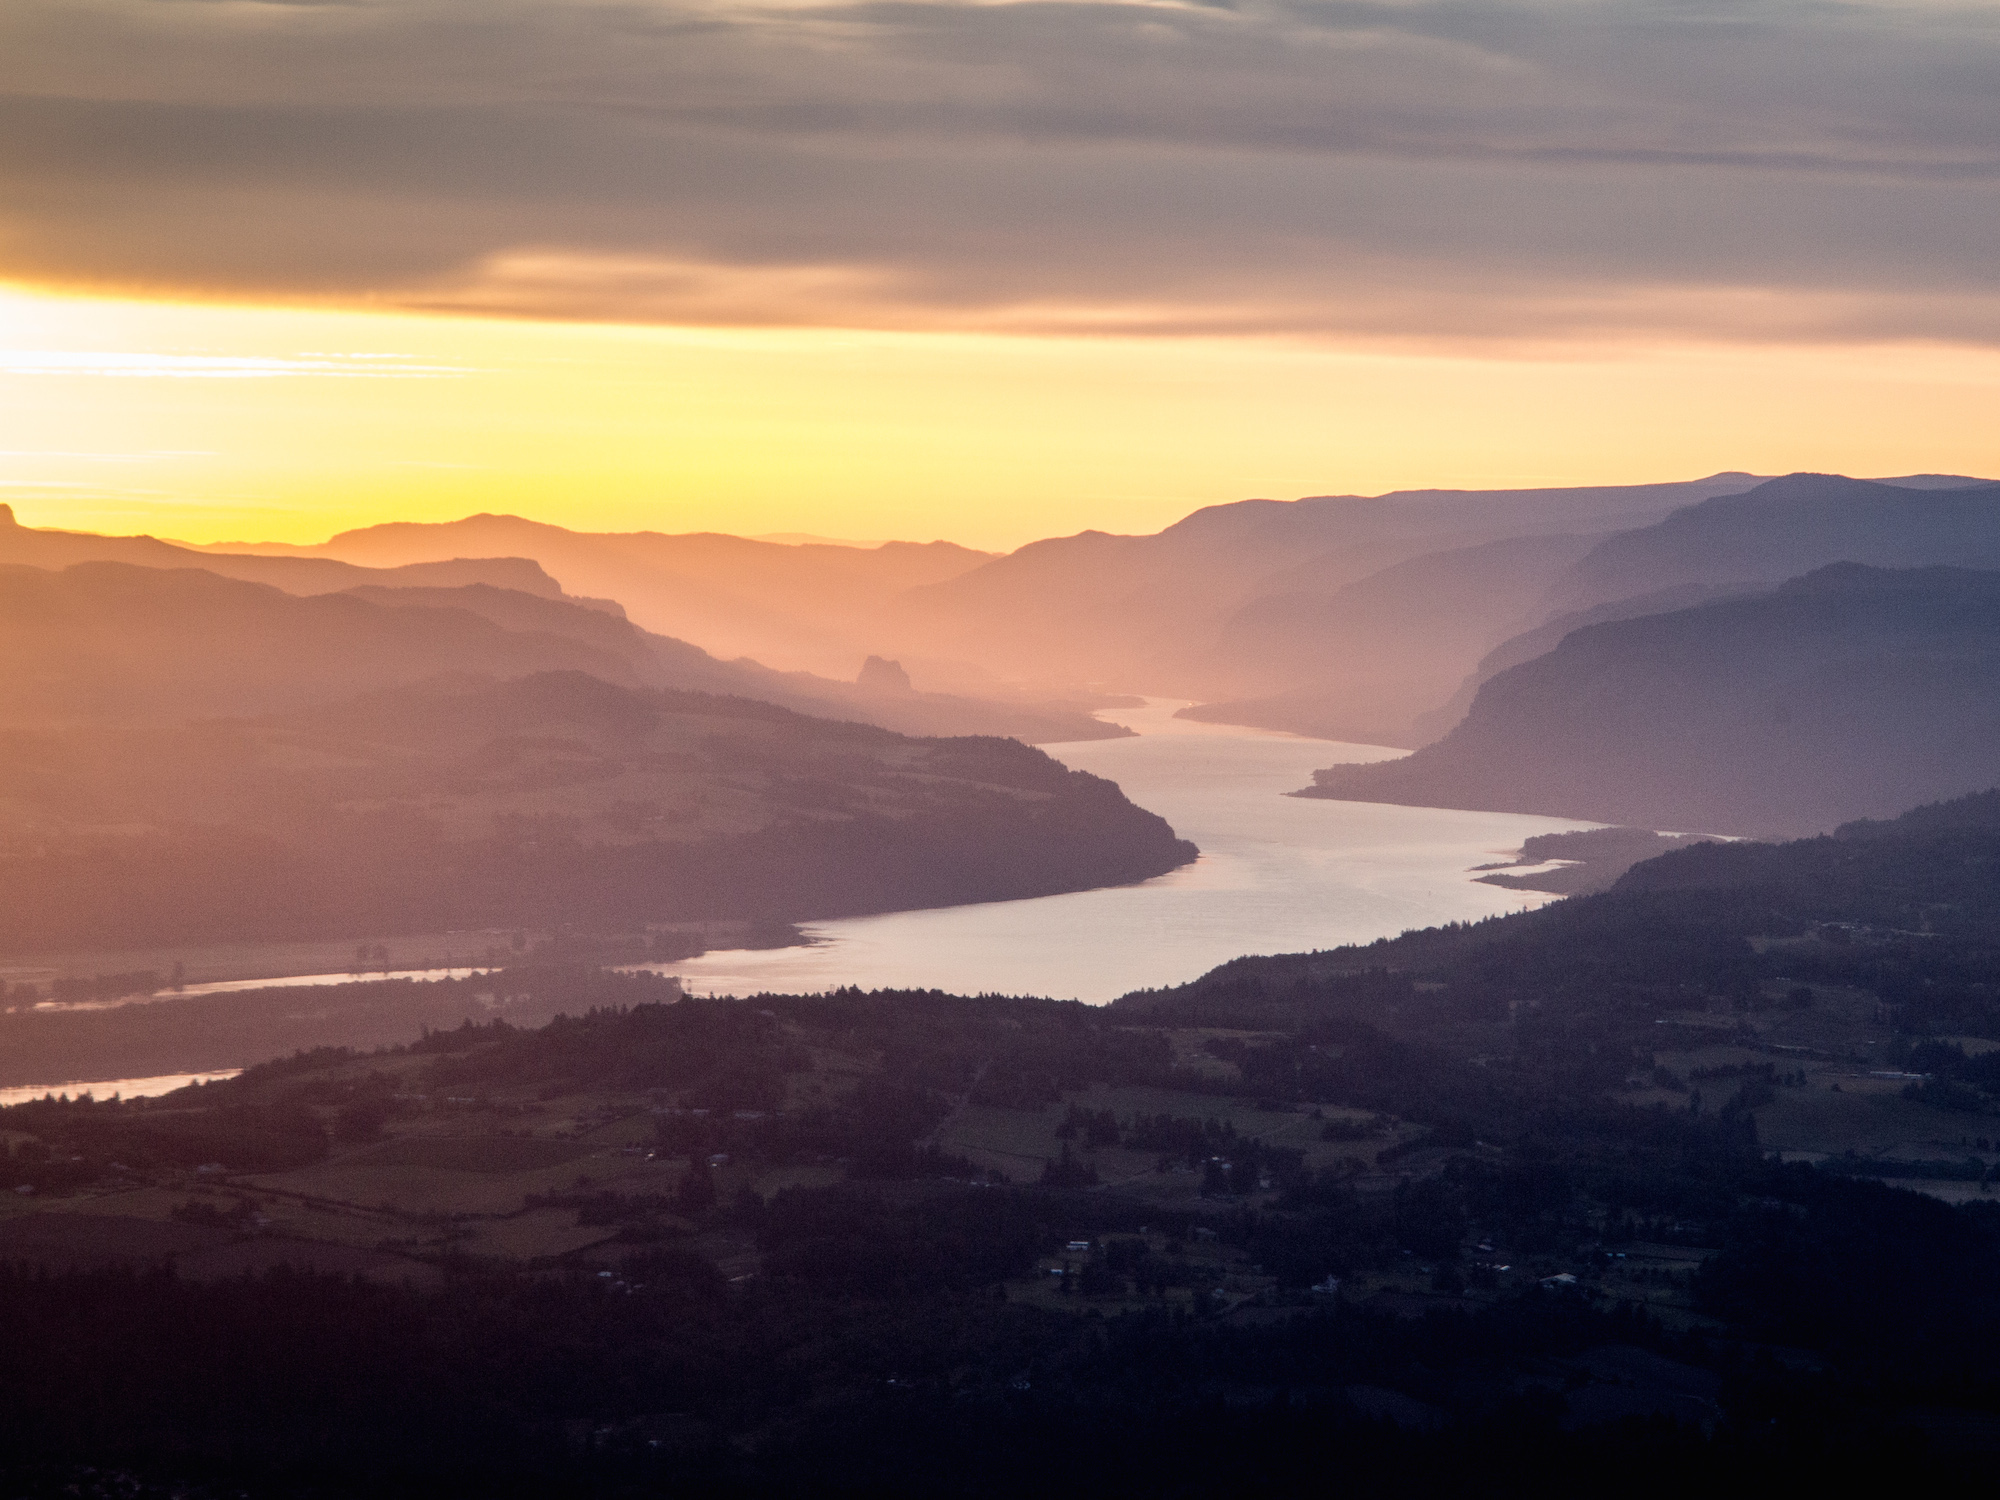 Columbia River Gorge on Summer Solstice, June 23, 2014. © Dennis Dimick